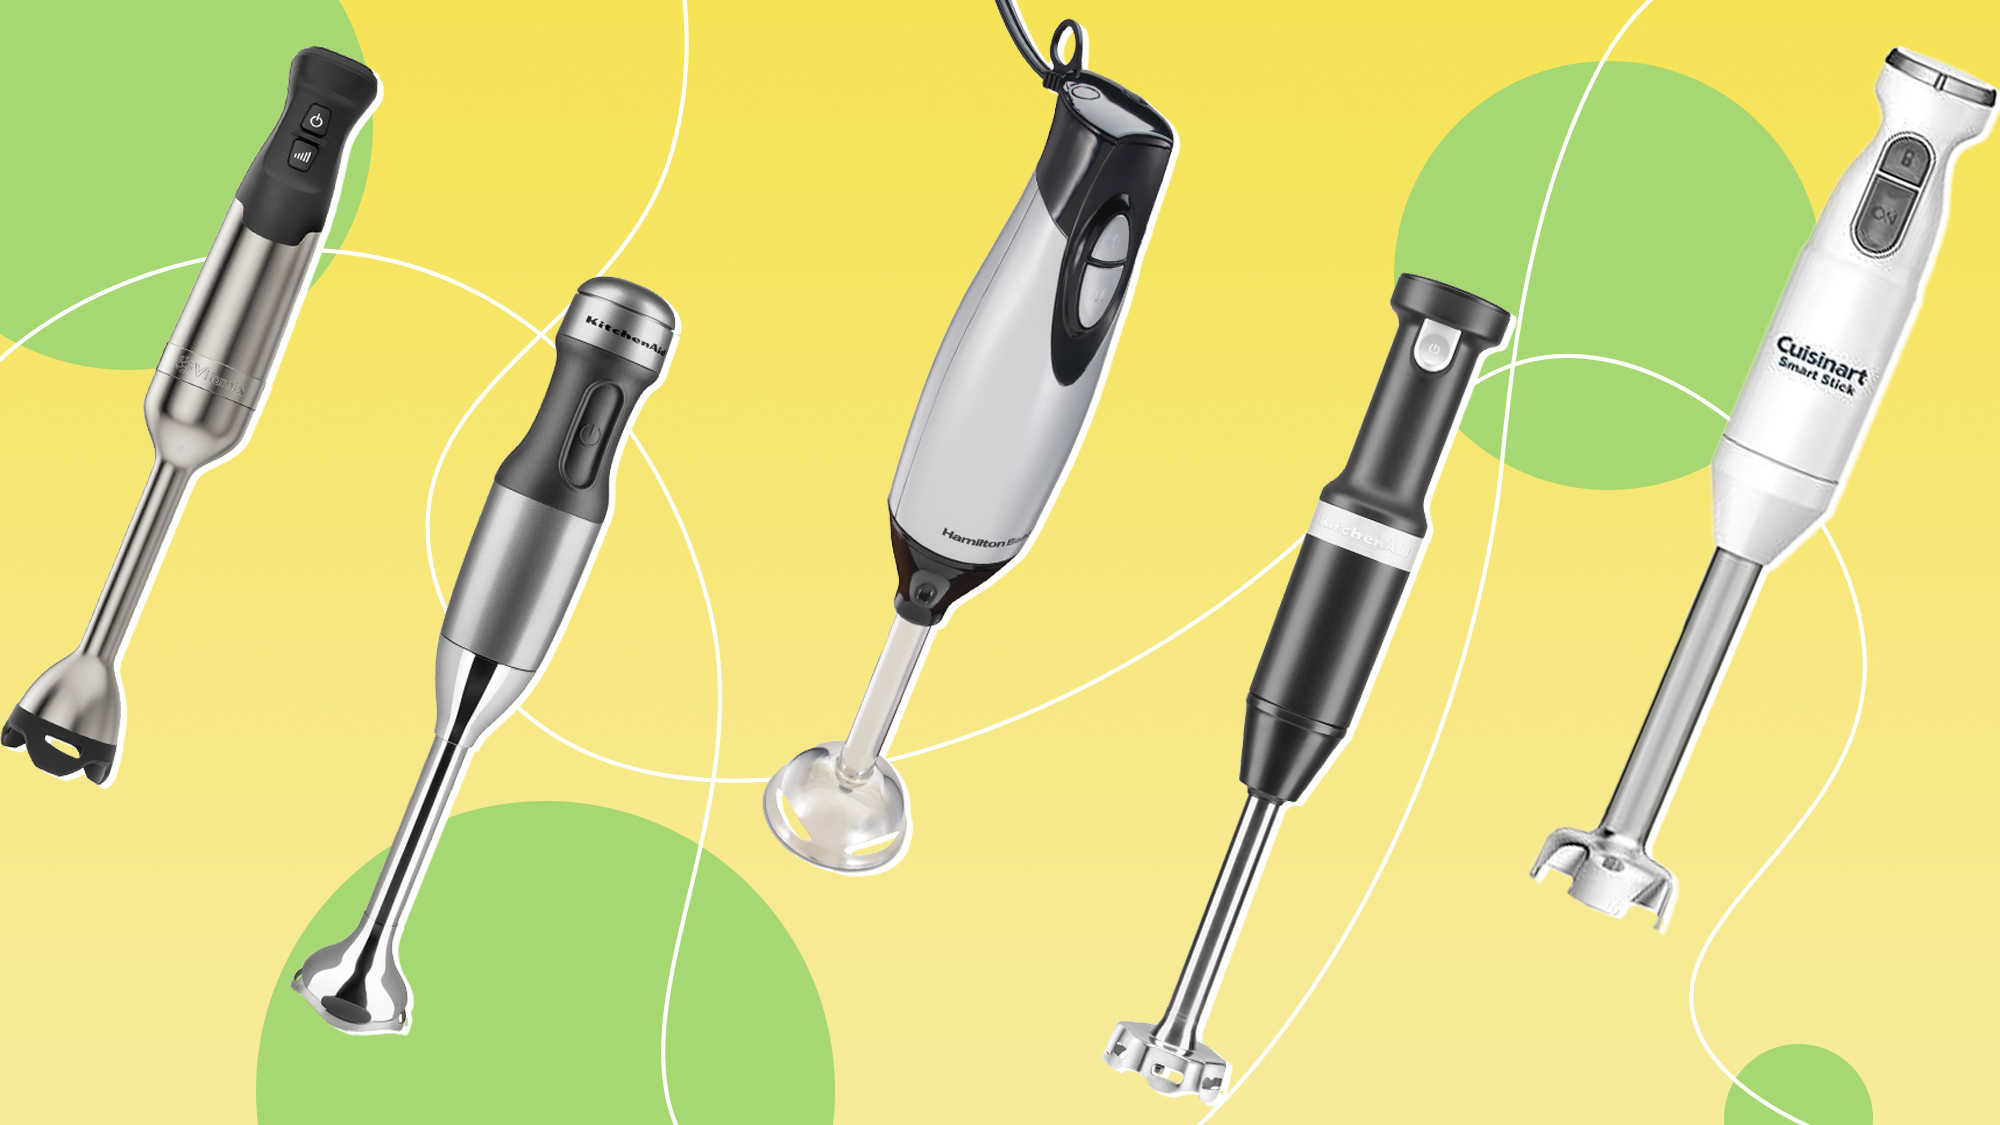 5 electric hand mixers on a designed background